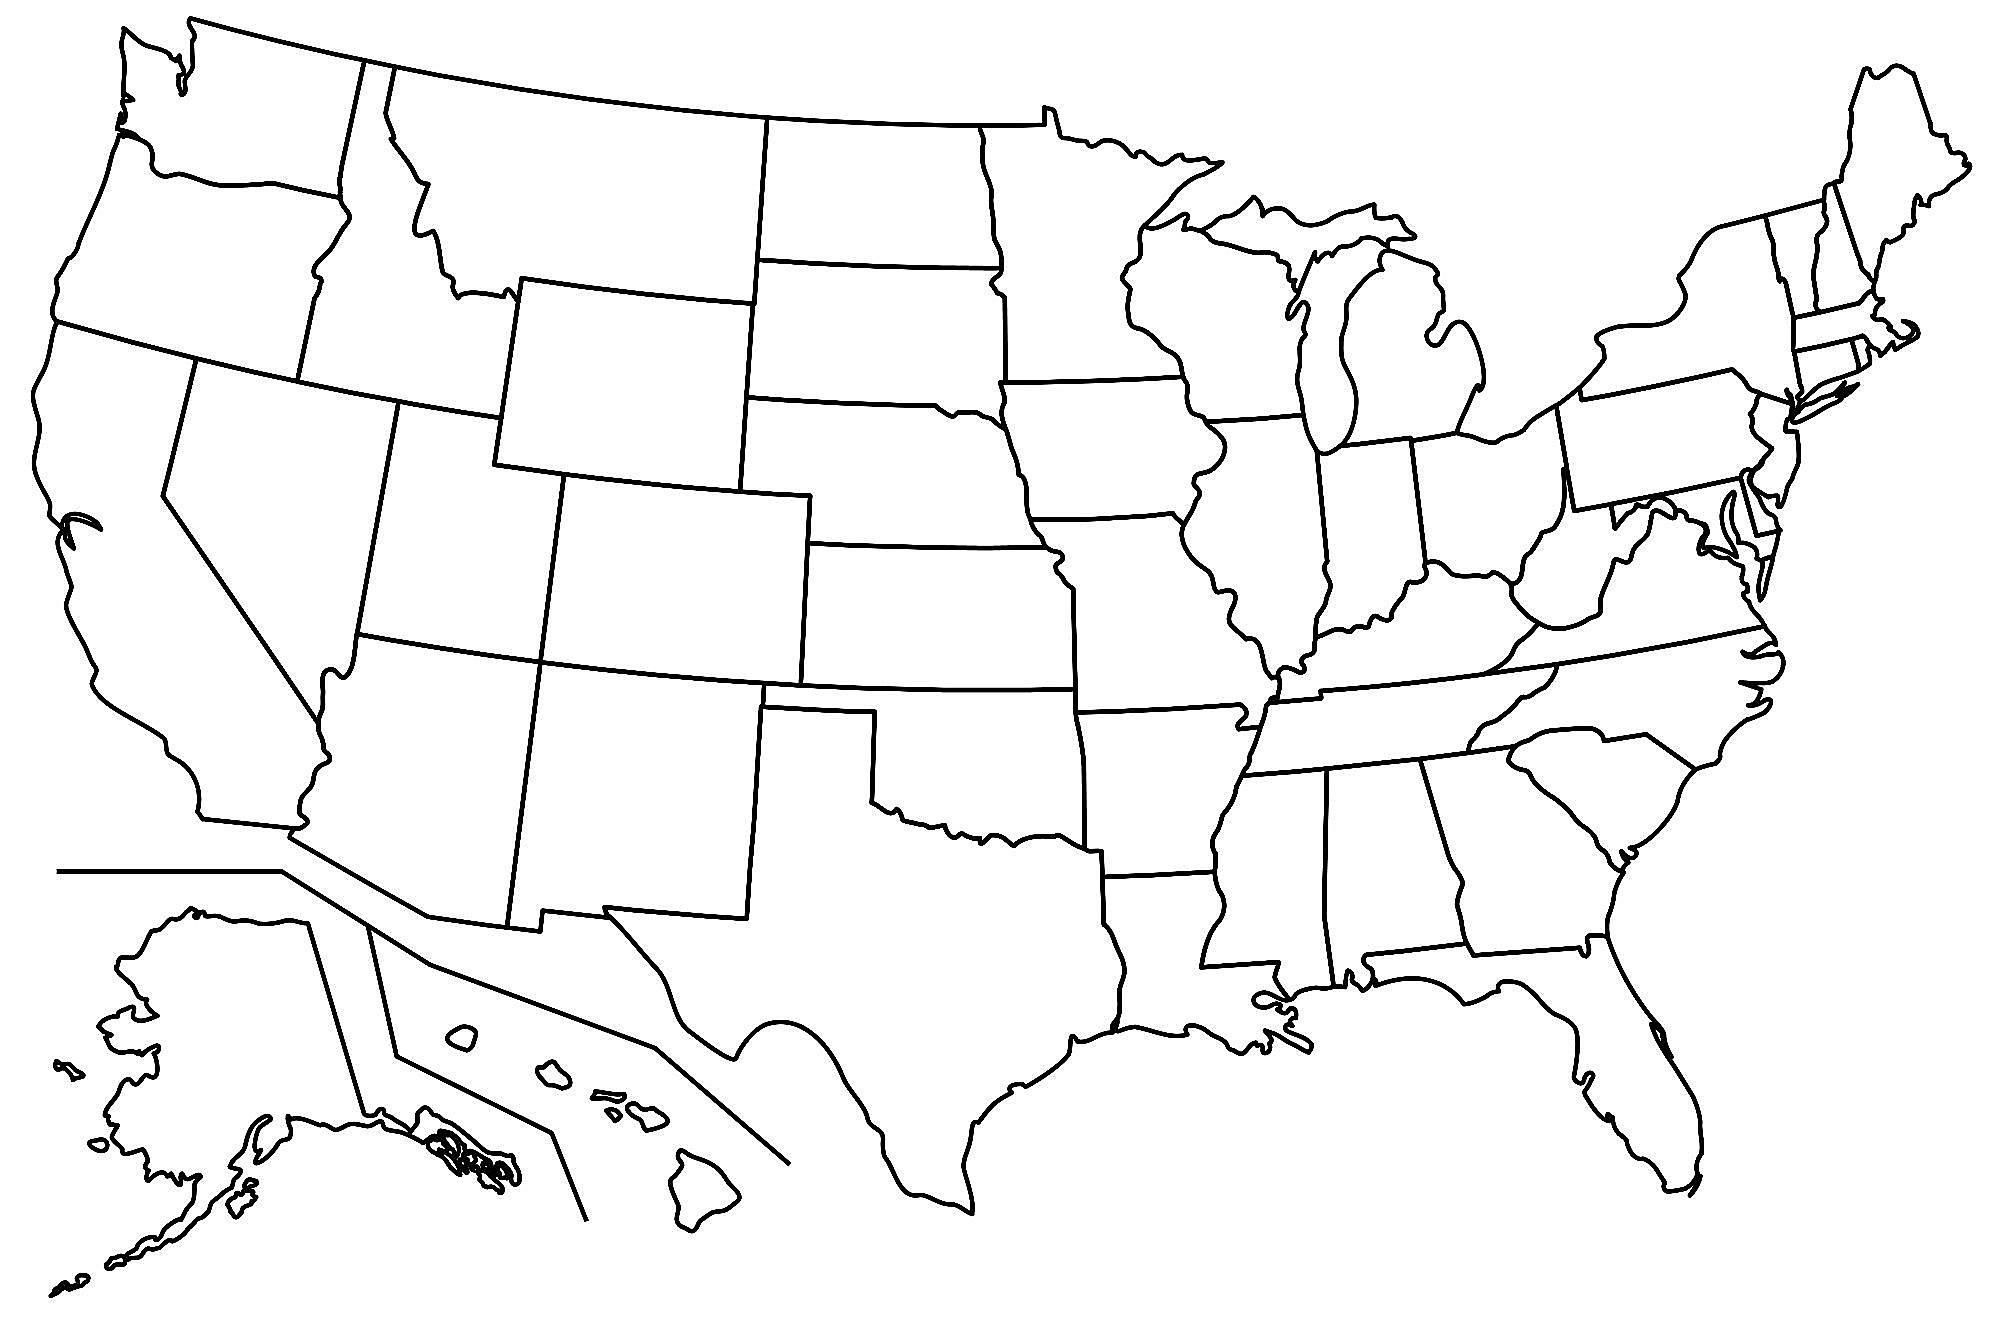 Us Map Fill In The Blank Unique United States Map Quiz Printout - Blank Us Map Printable